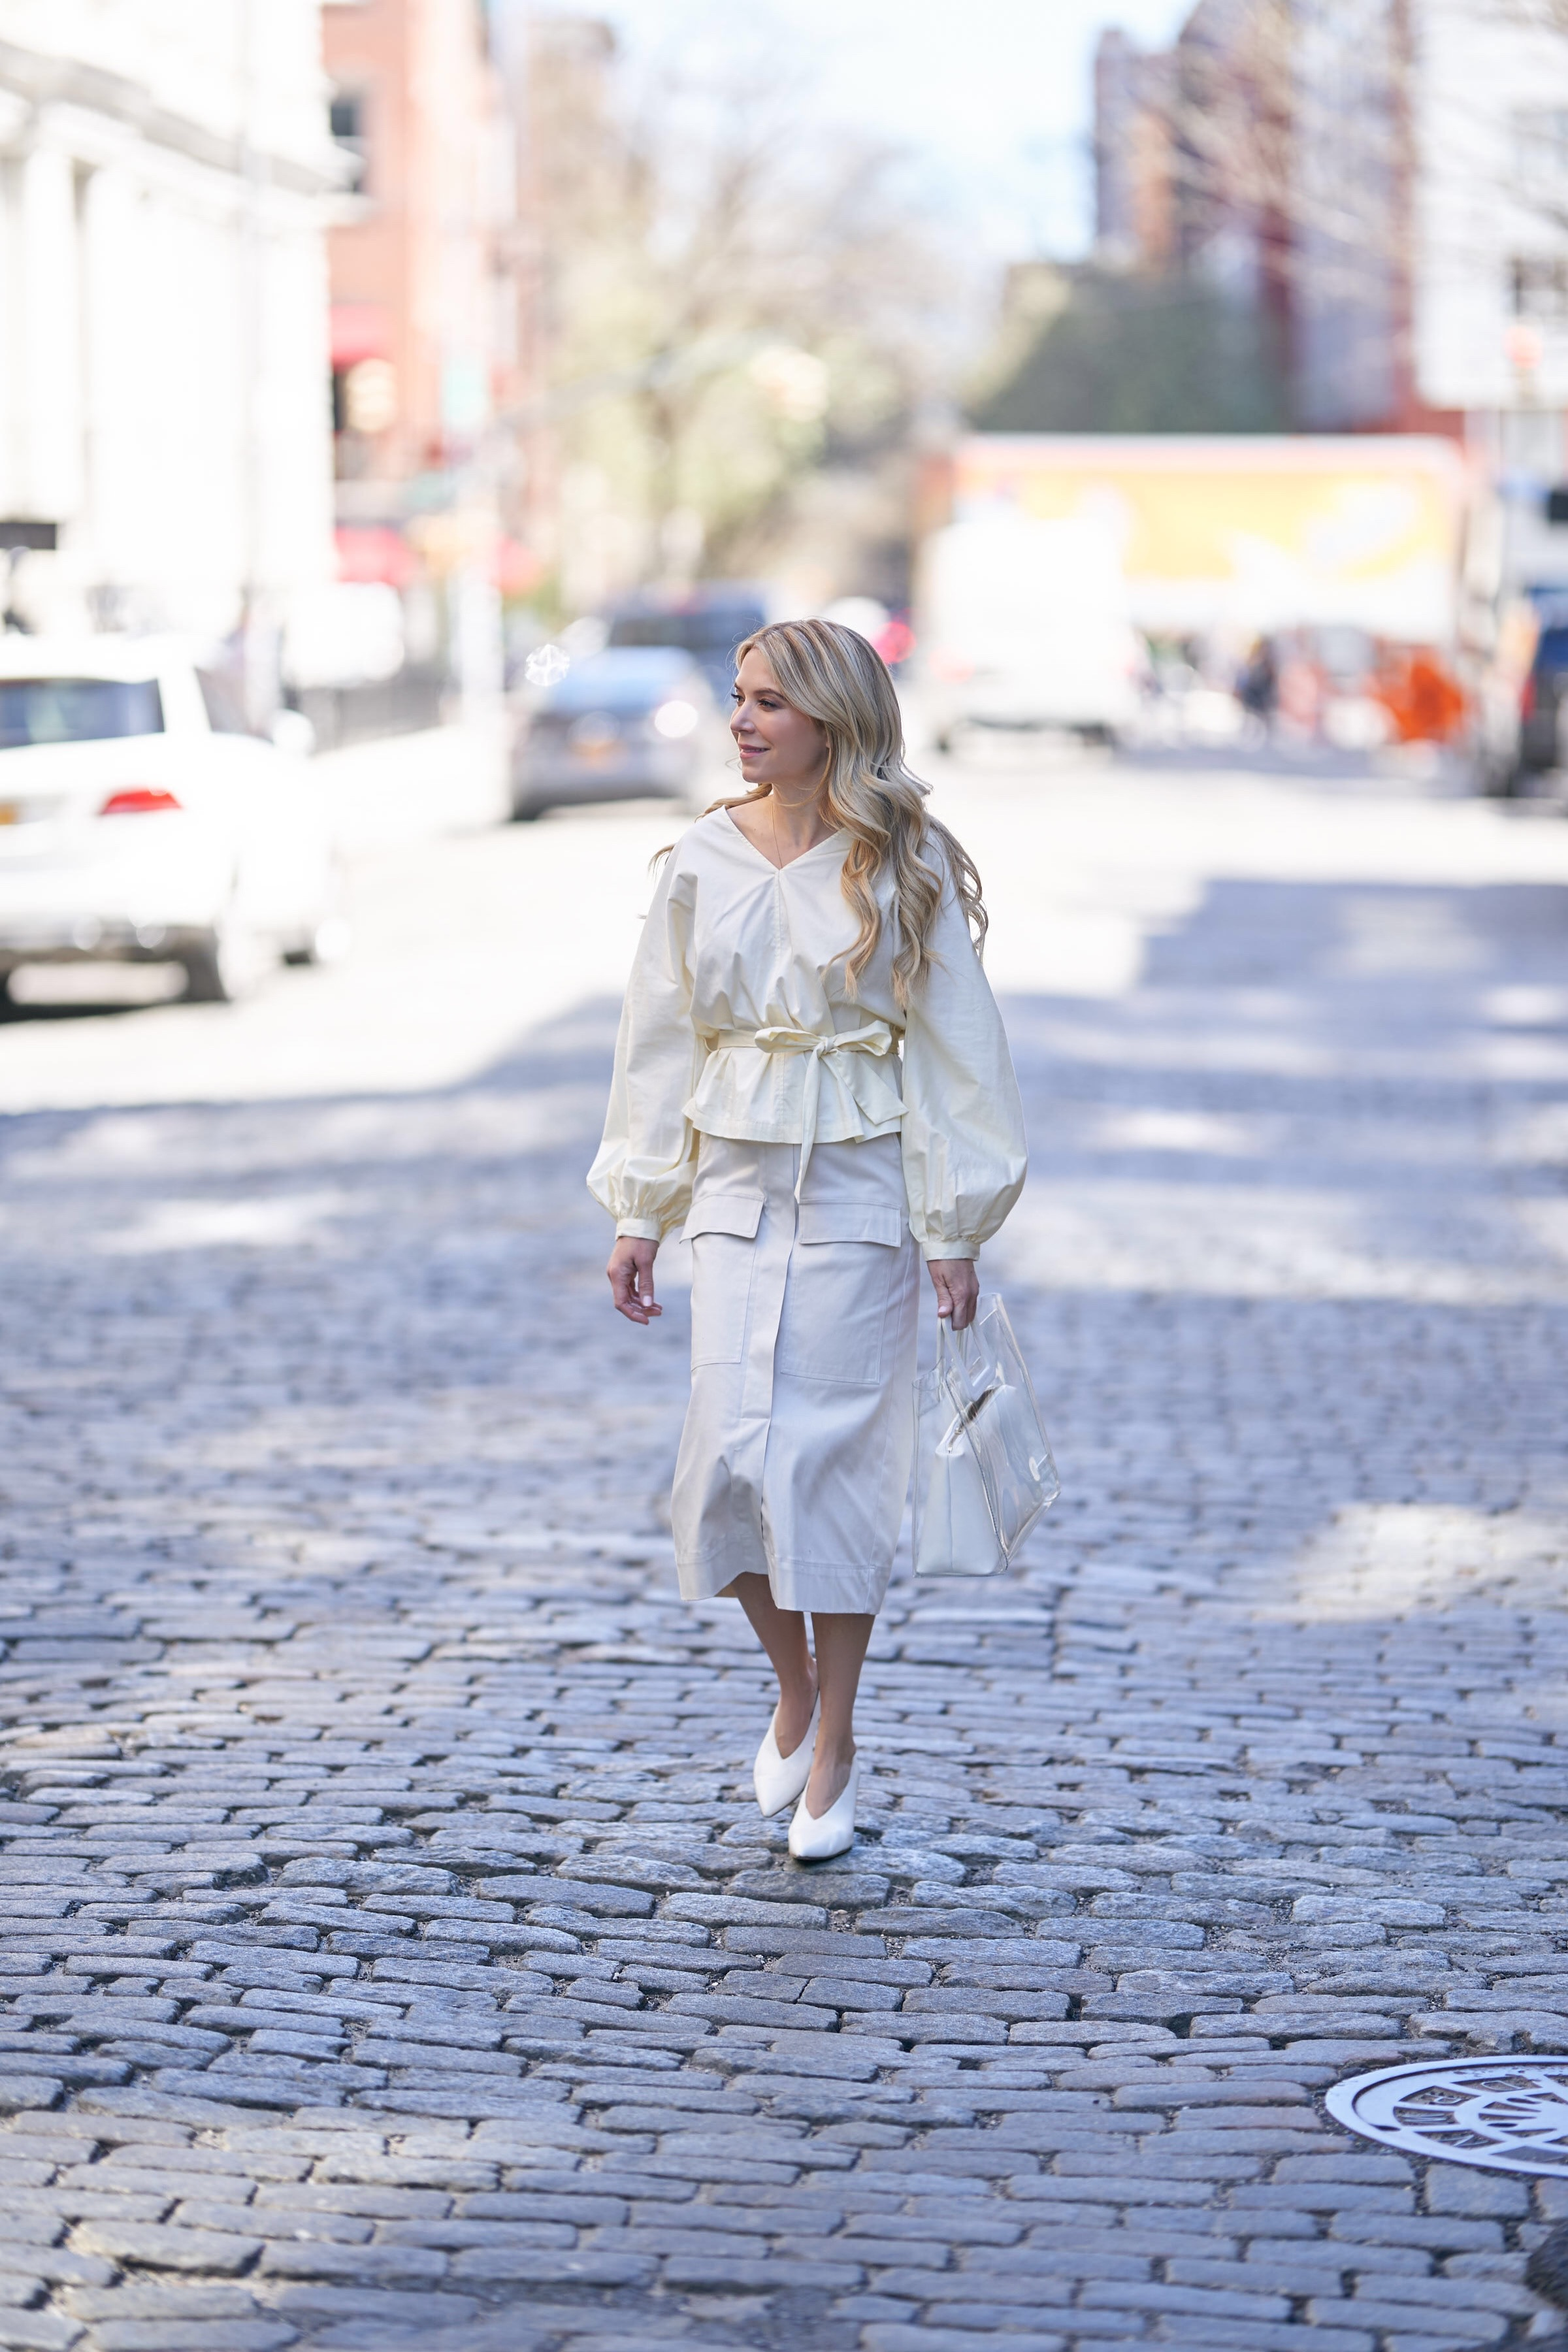 NYC fashion influencer, Laura Bonner, About the Outfits, www.abouttheoutfits.com